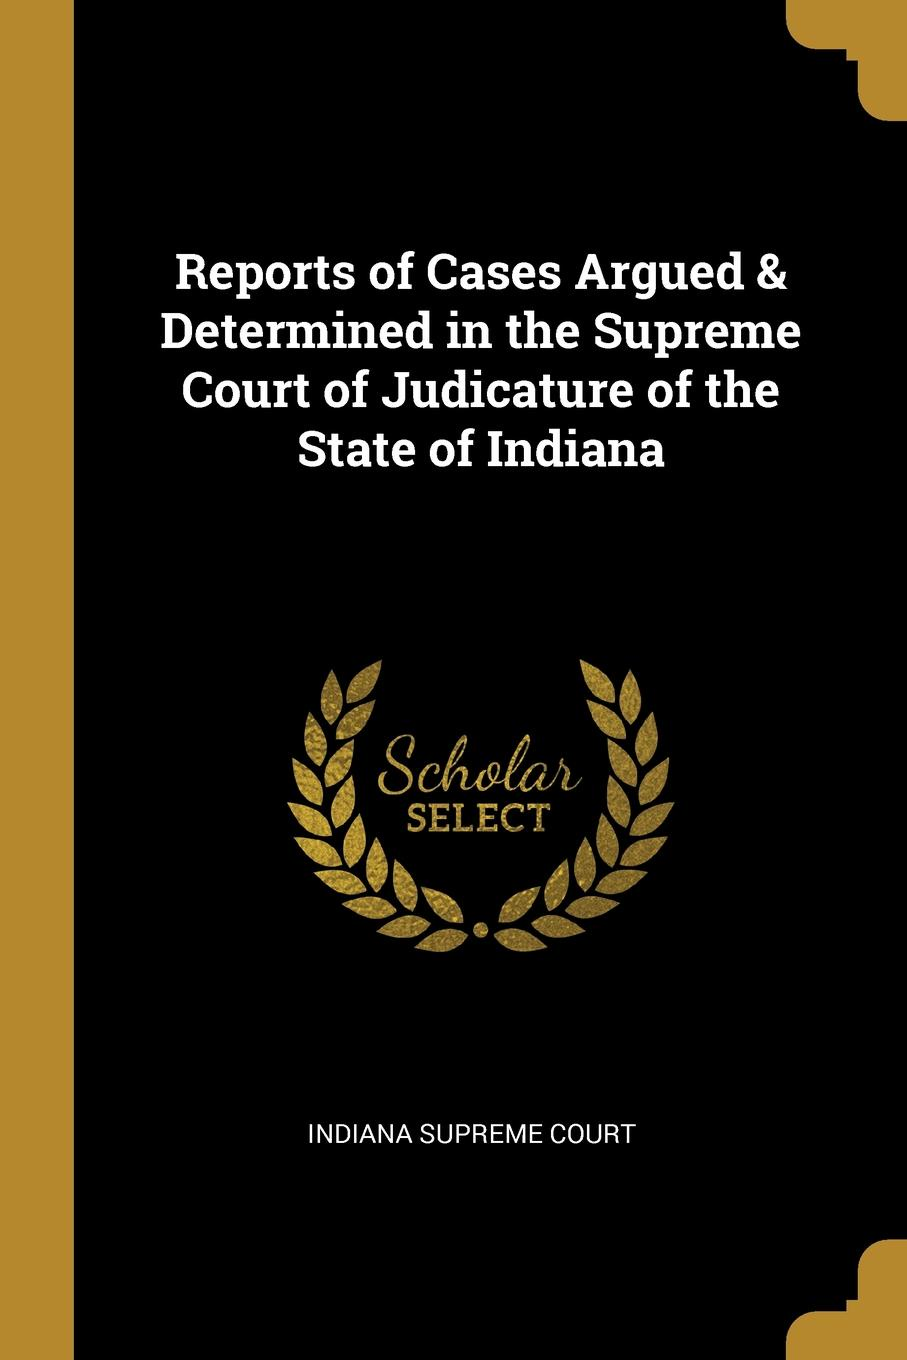 Indiana Supreme Court Reports of Cases Argued. Determined in the Supreme Court of Judicature of the State of Indiana